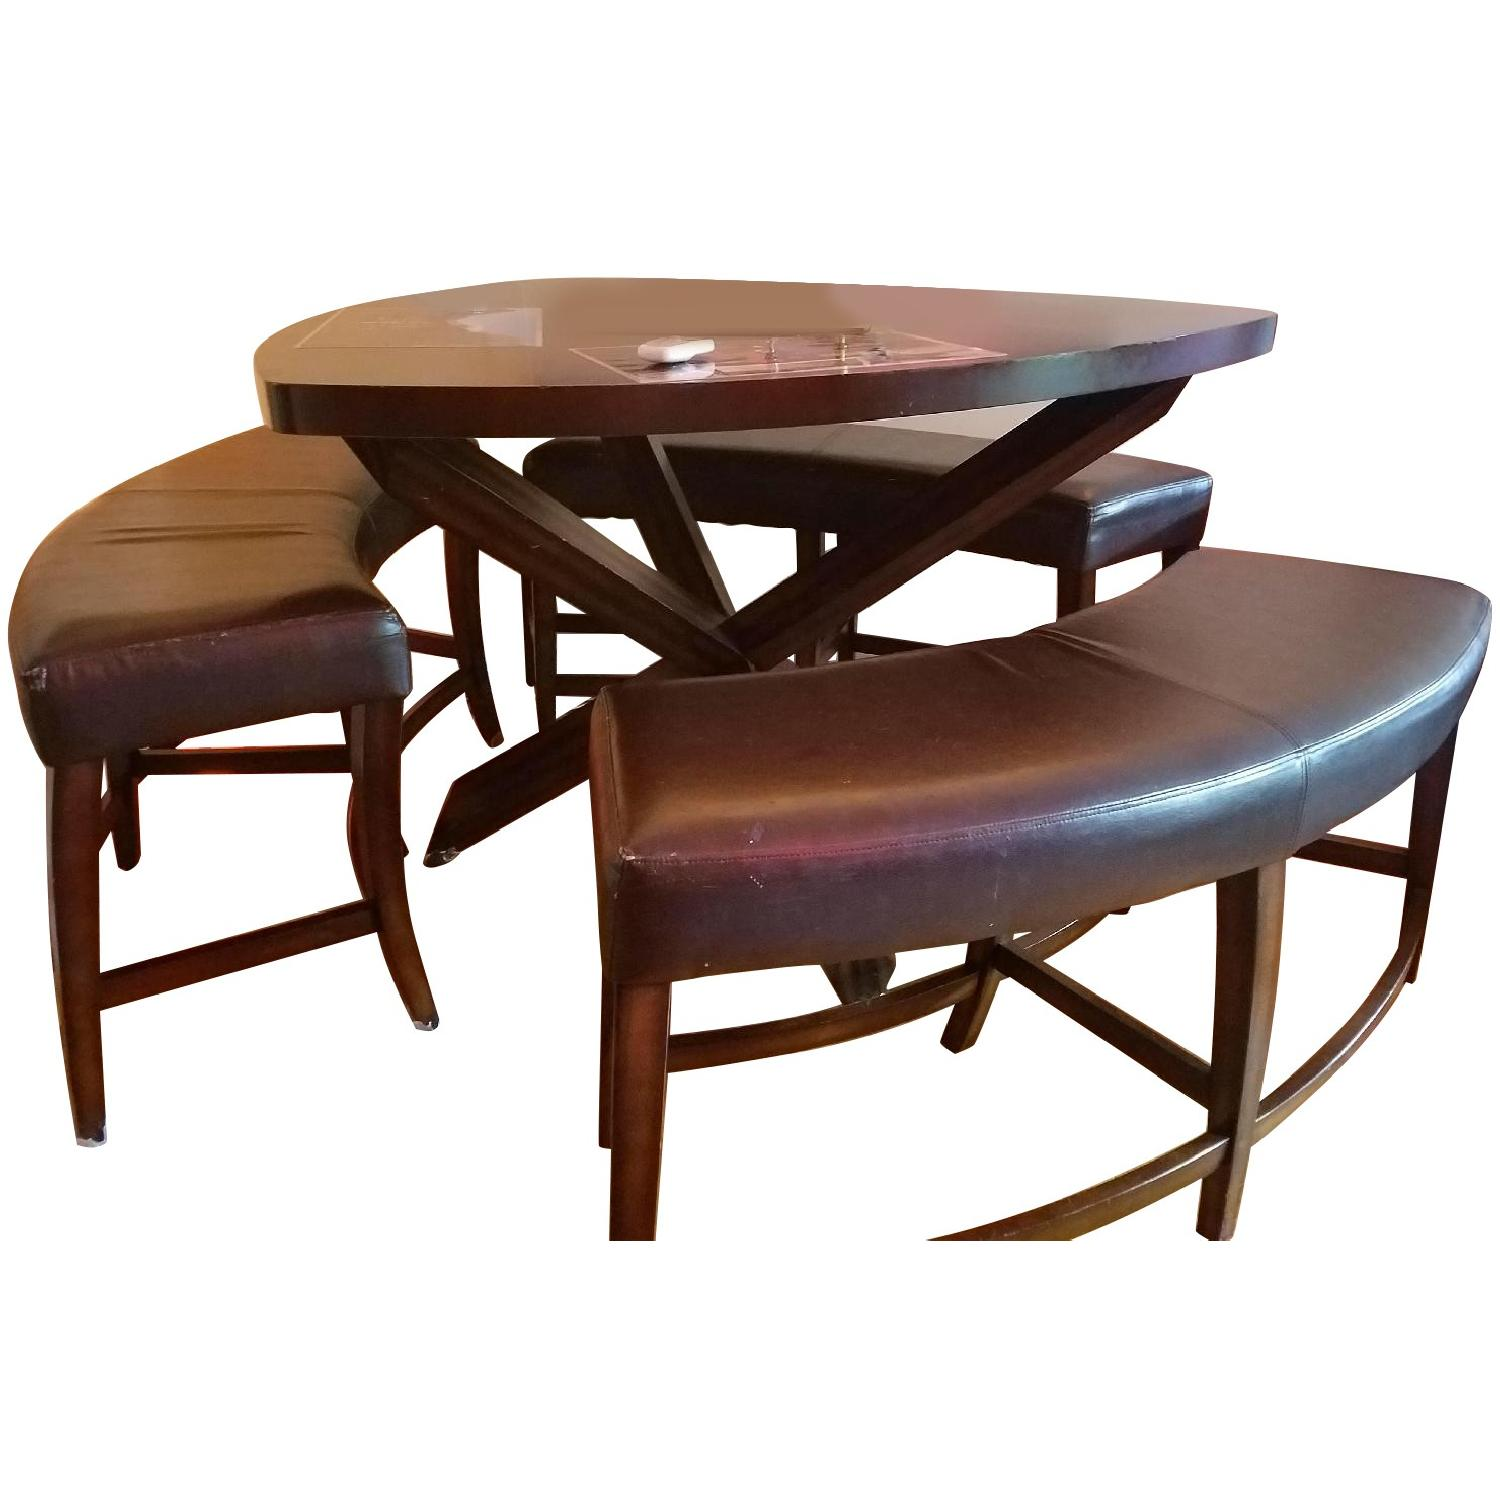 Triangle Dining Table w/ 3 Benches - image-0